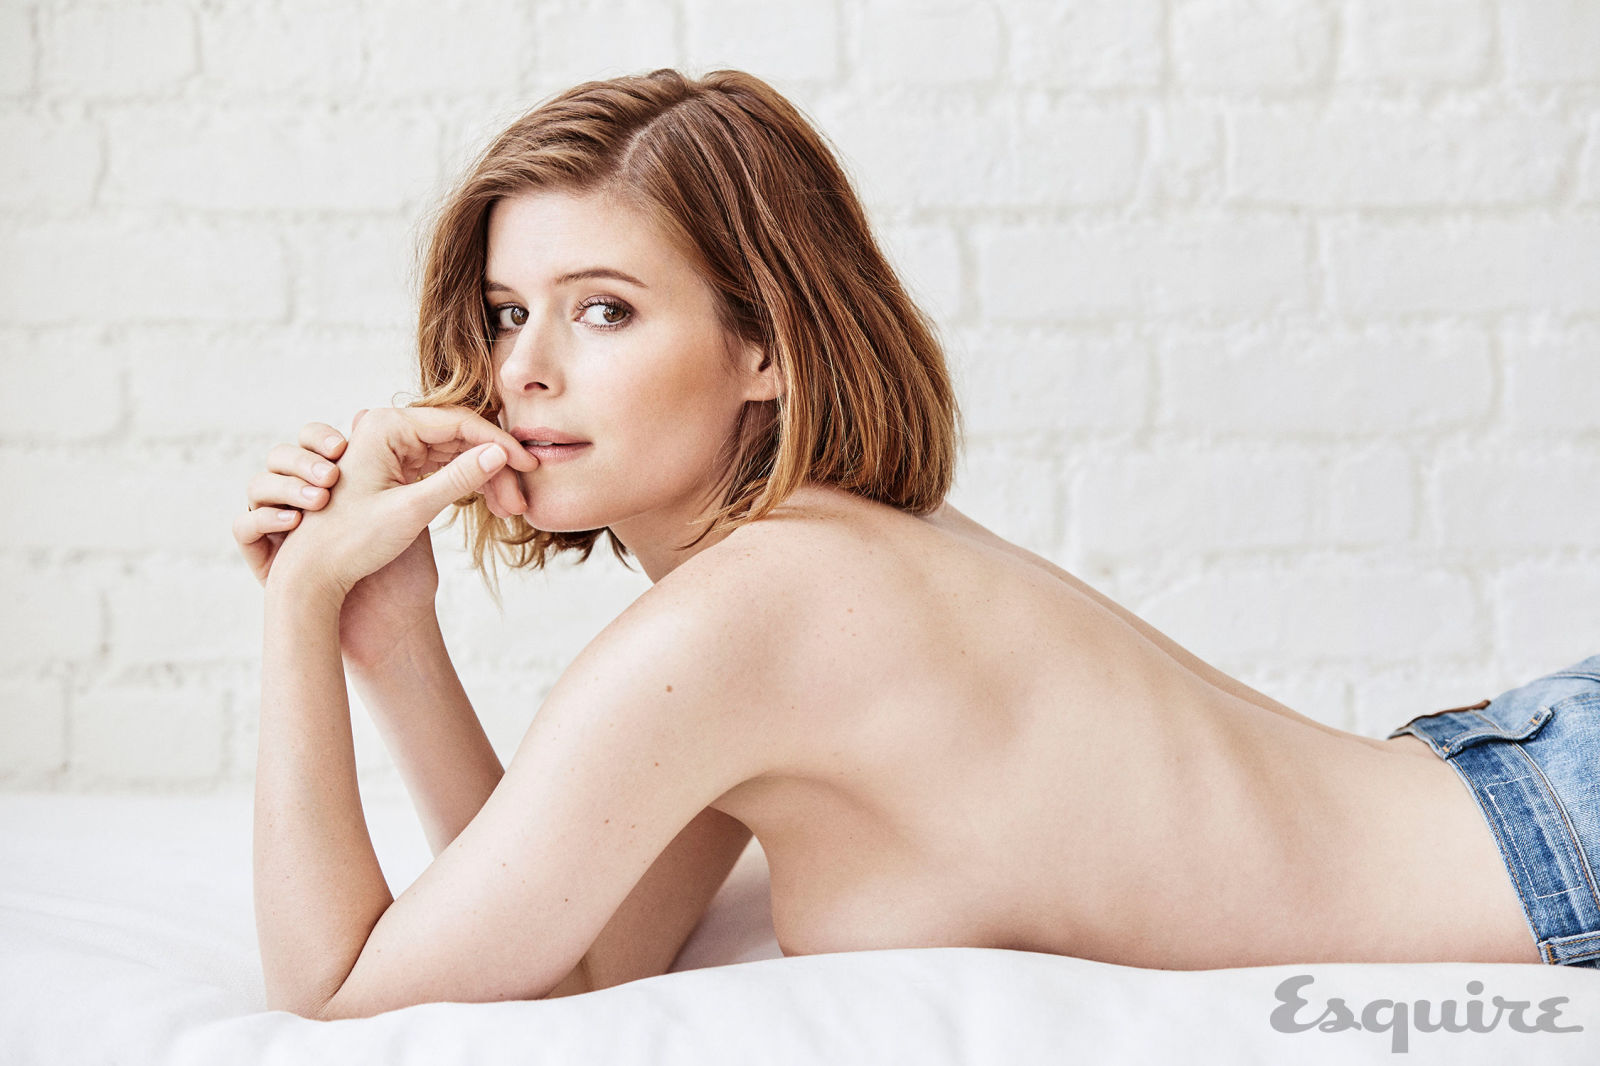 kate_mara_esquire2015_5.jpg